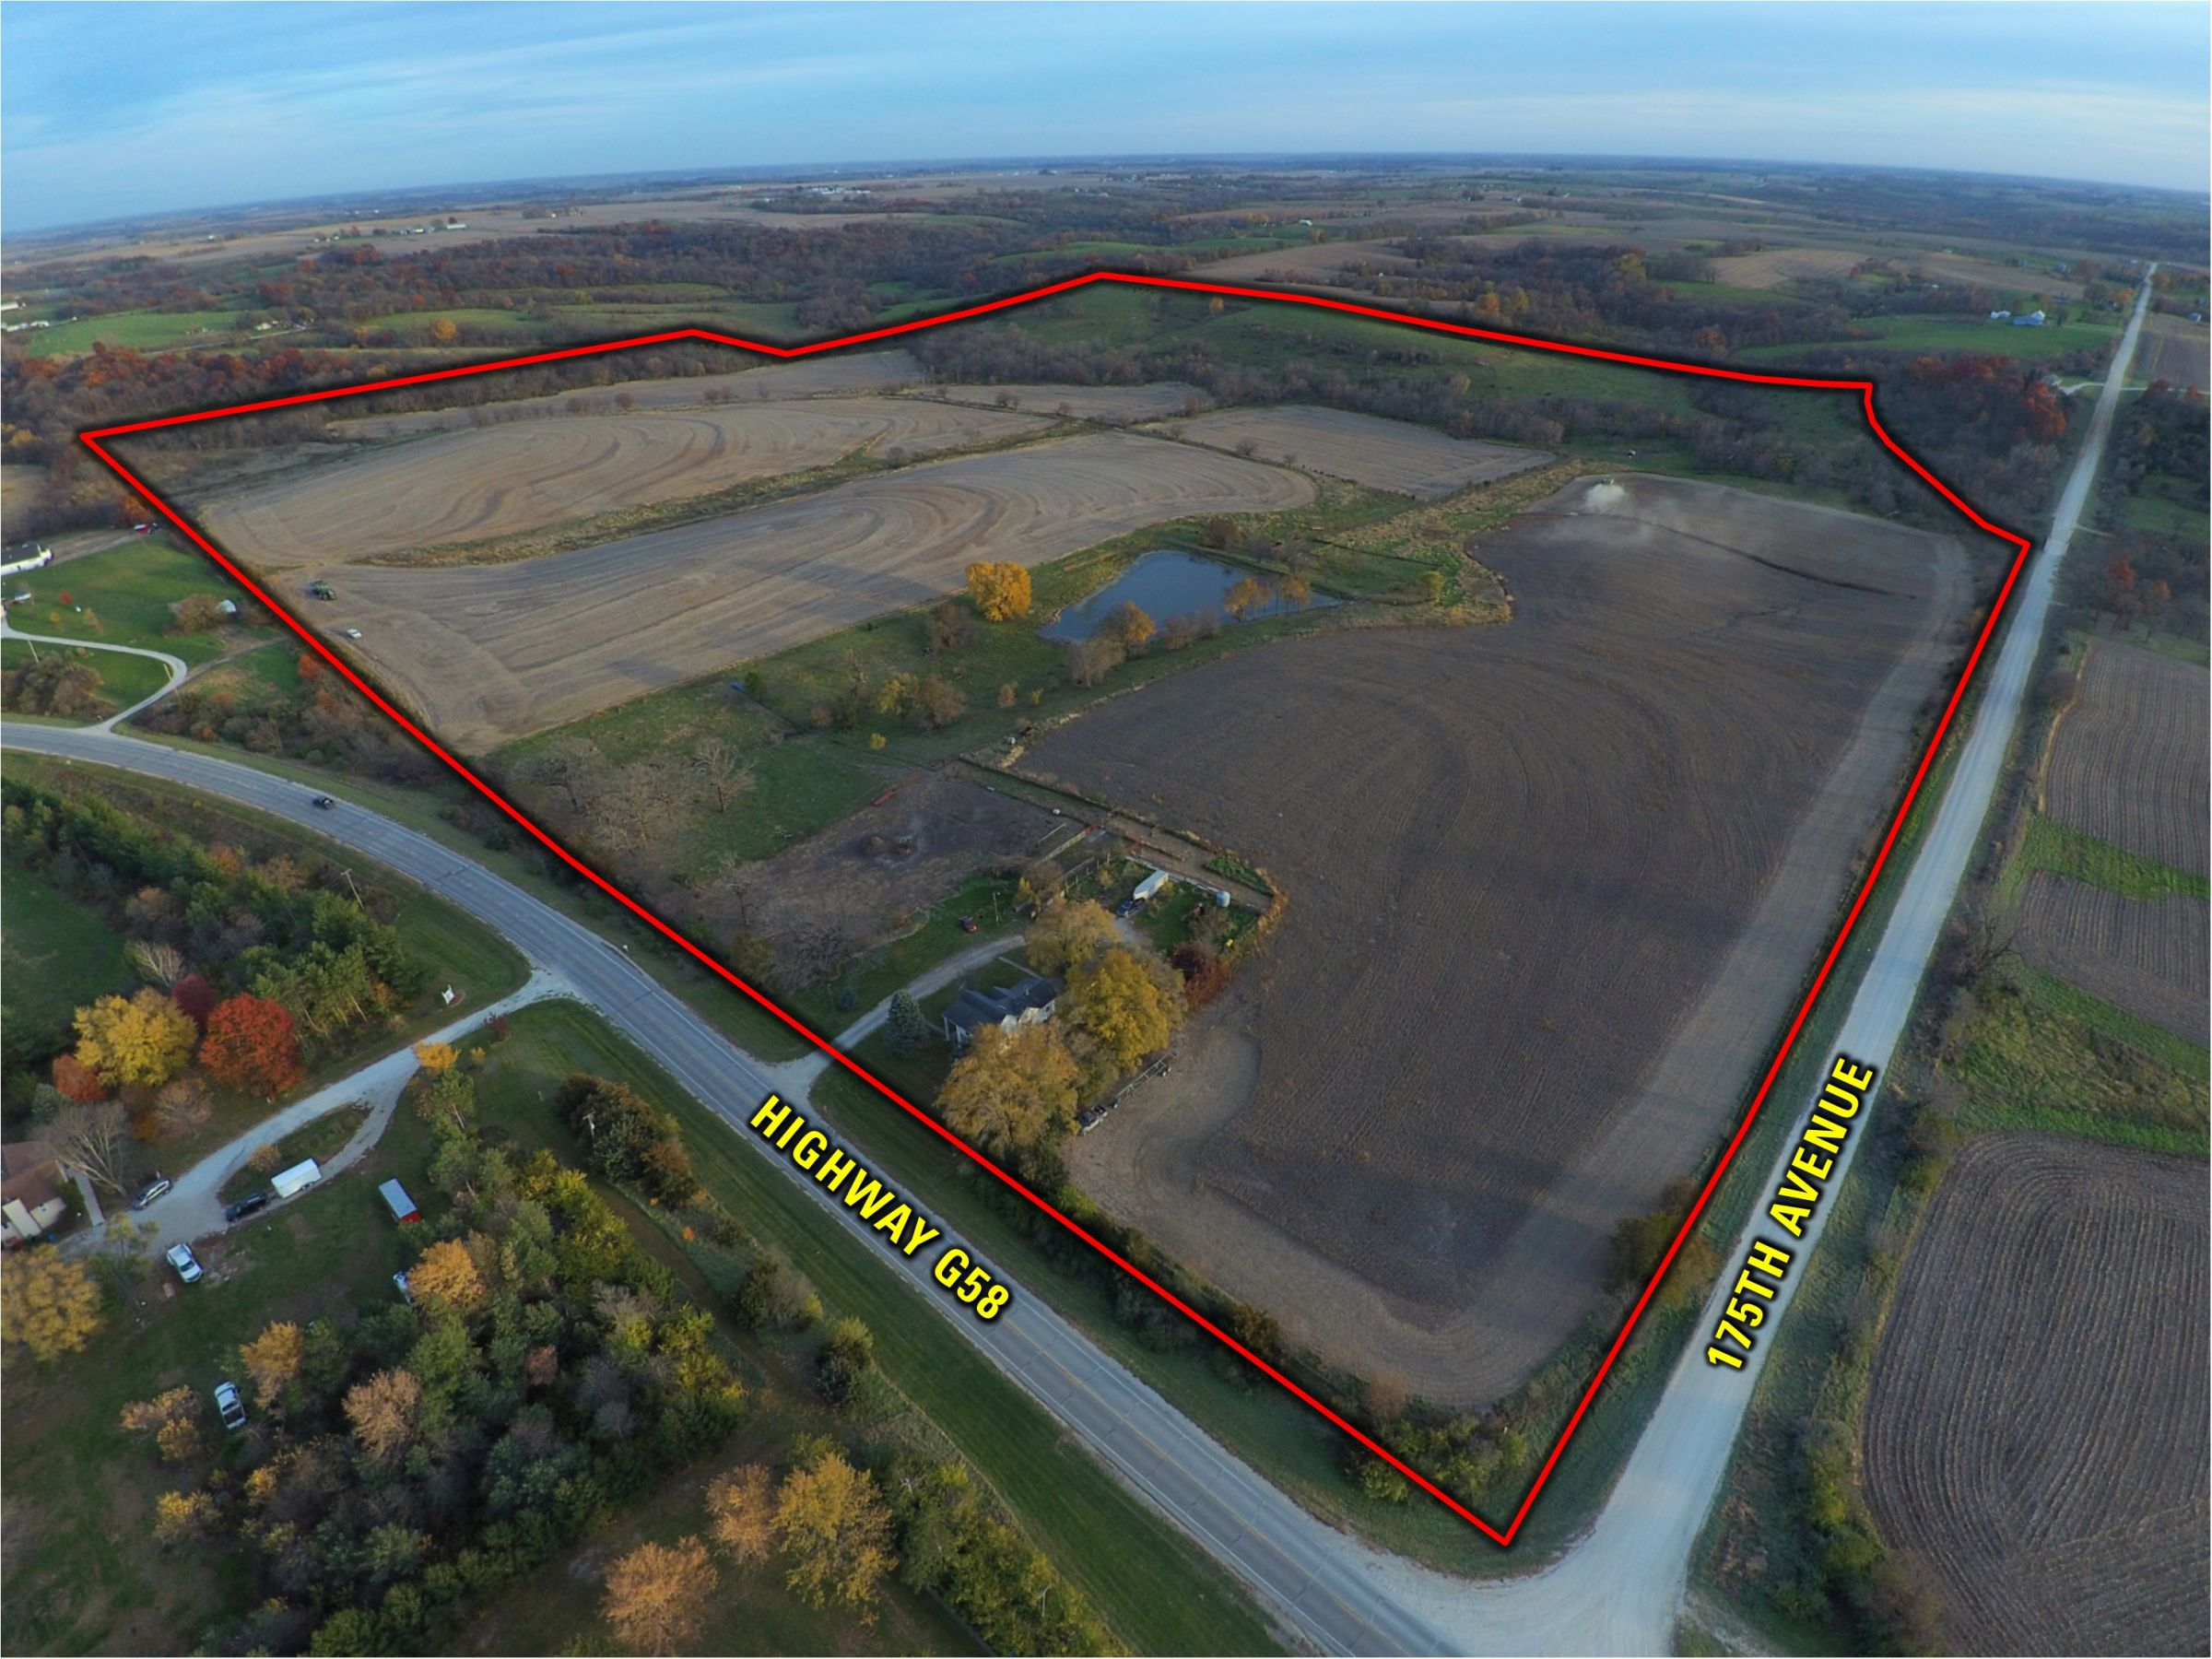 Peoples Company Iowa Farmland for Sale_Warren County Iowa_17356 G58 Hwy Milo, IA 50166